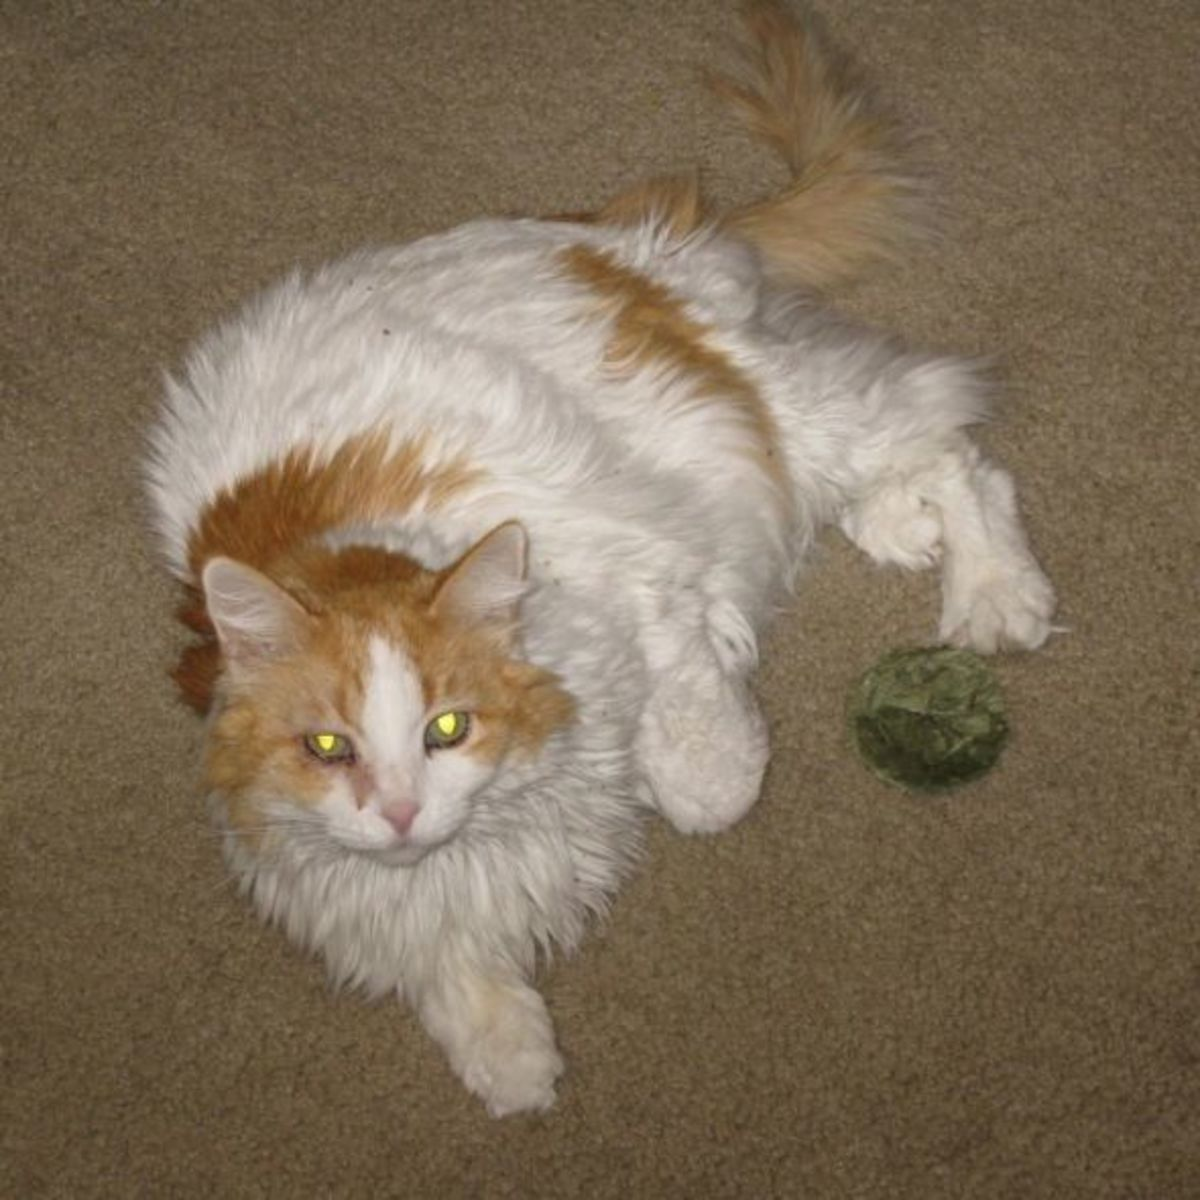 Scarlett had been throwing this catnip toy in the air, but she paused to look into the camera.